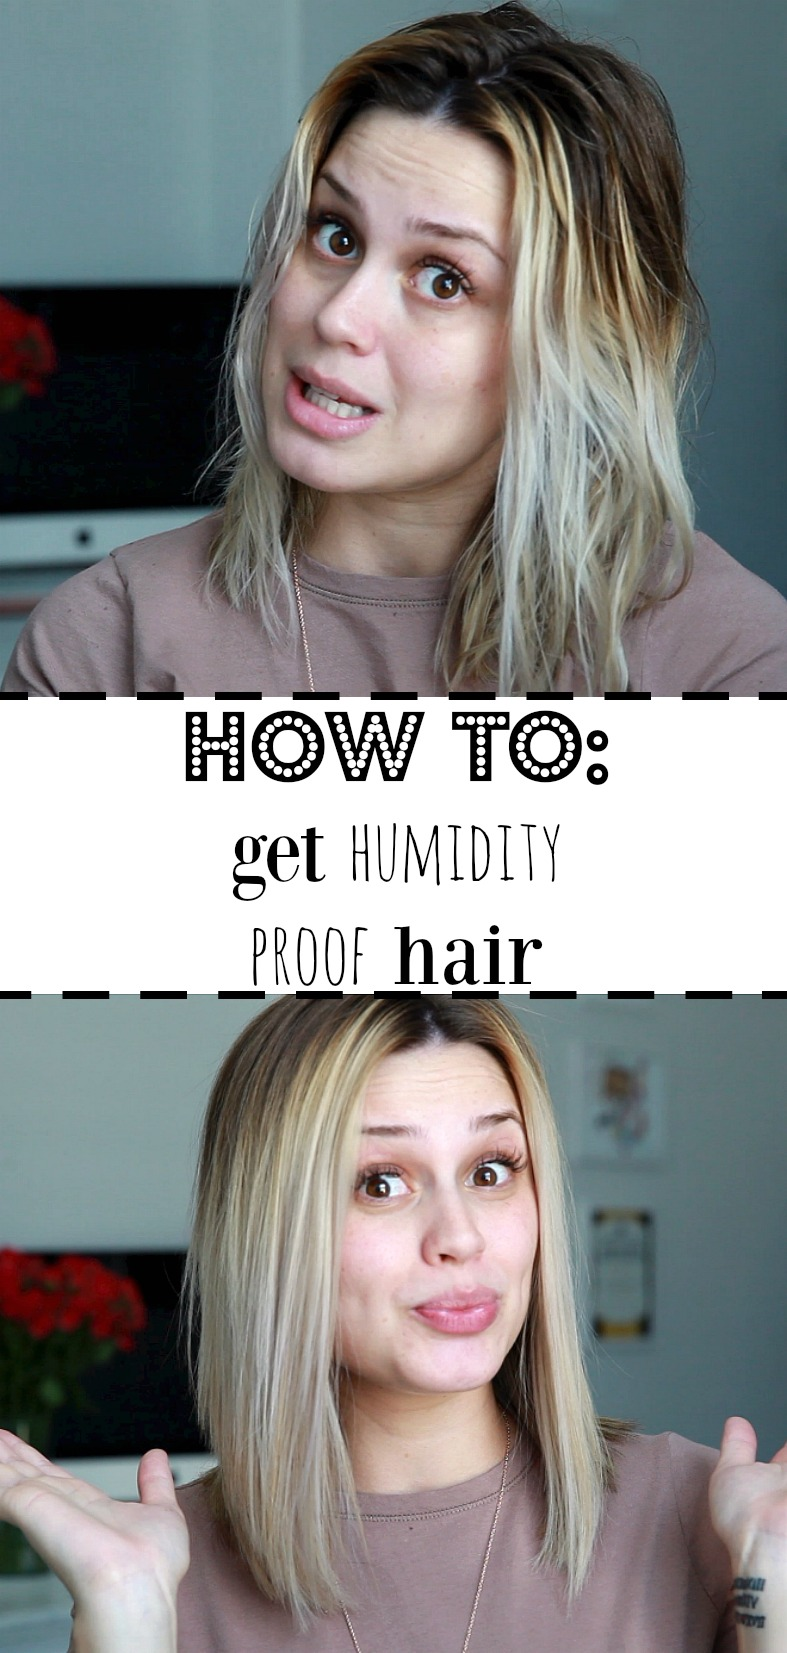 How to get humidity proof hair | Sleek hair Tutorial | Straight hair tutorial | Uptown with Elly Brown